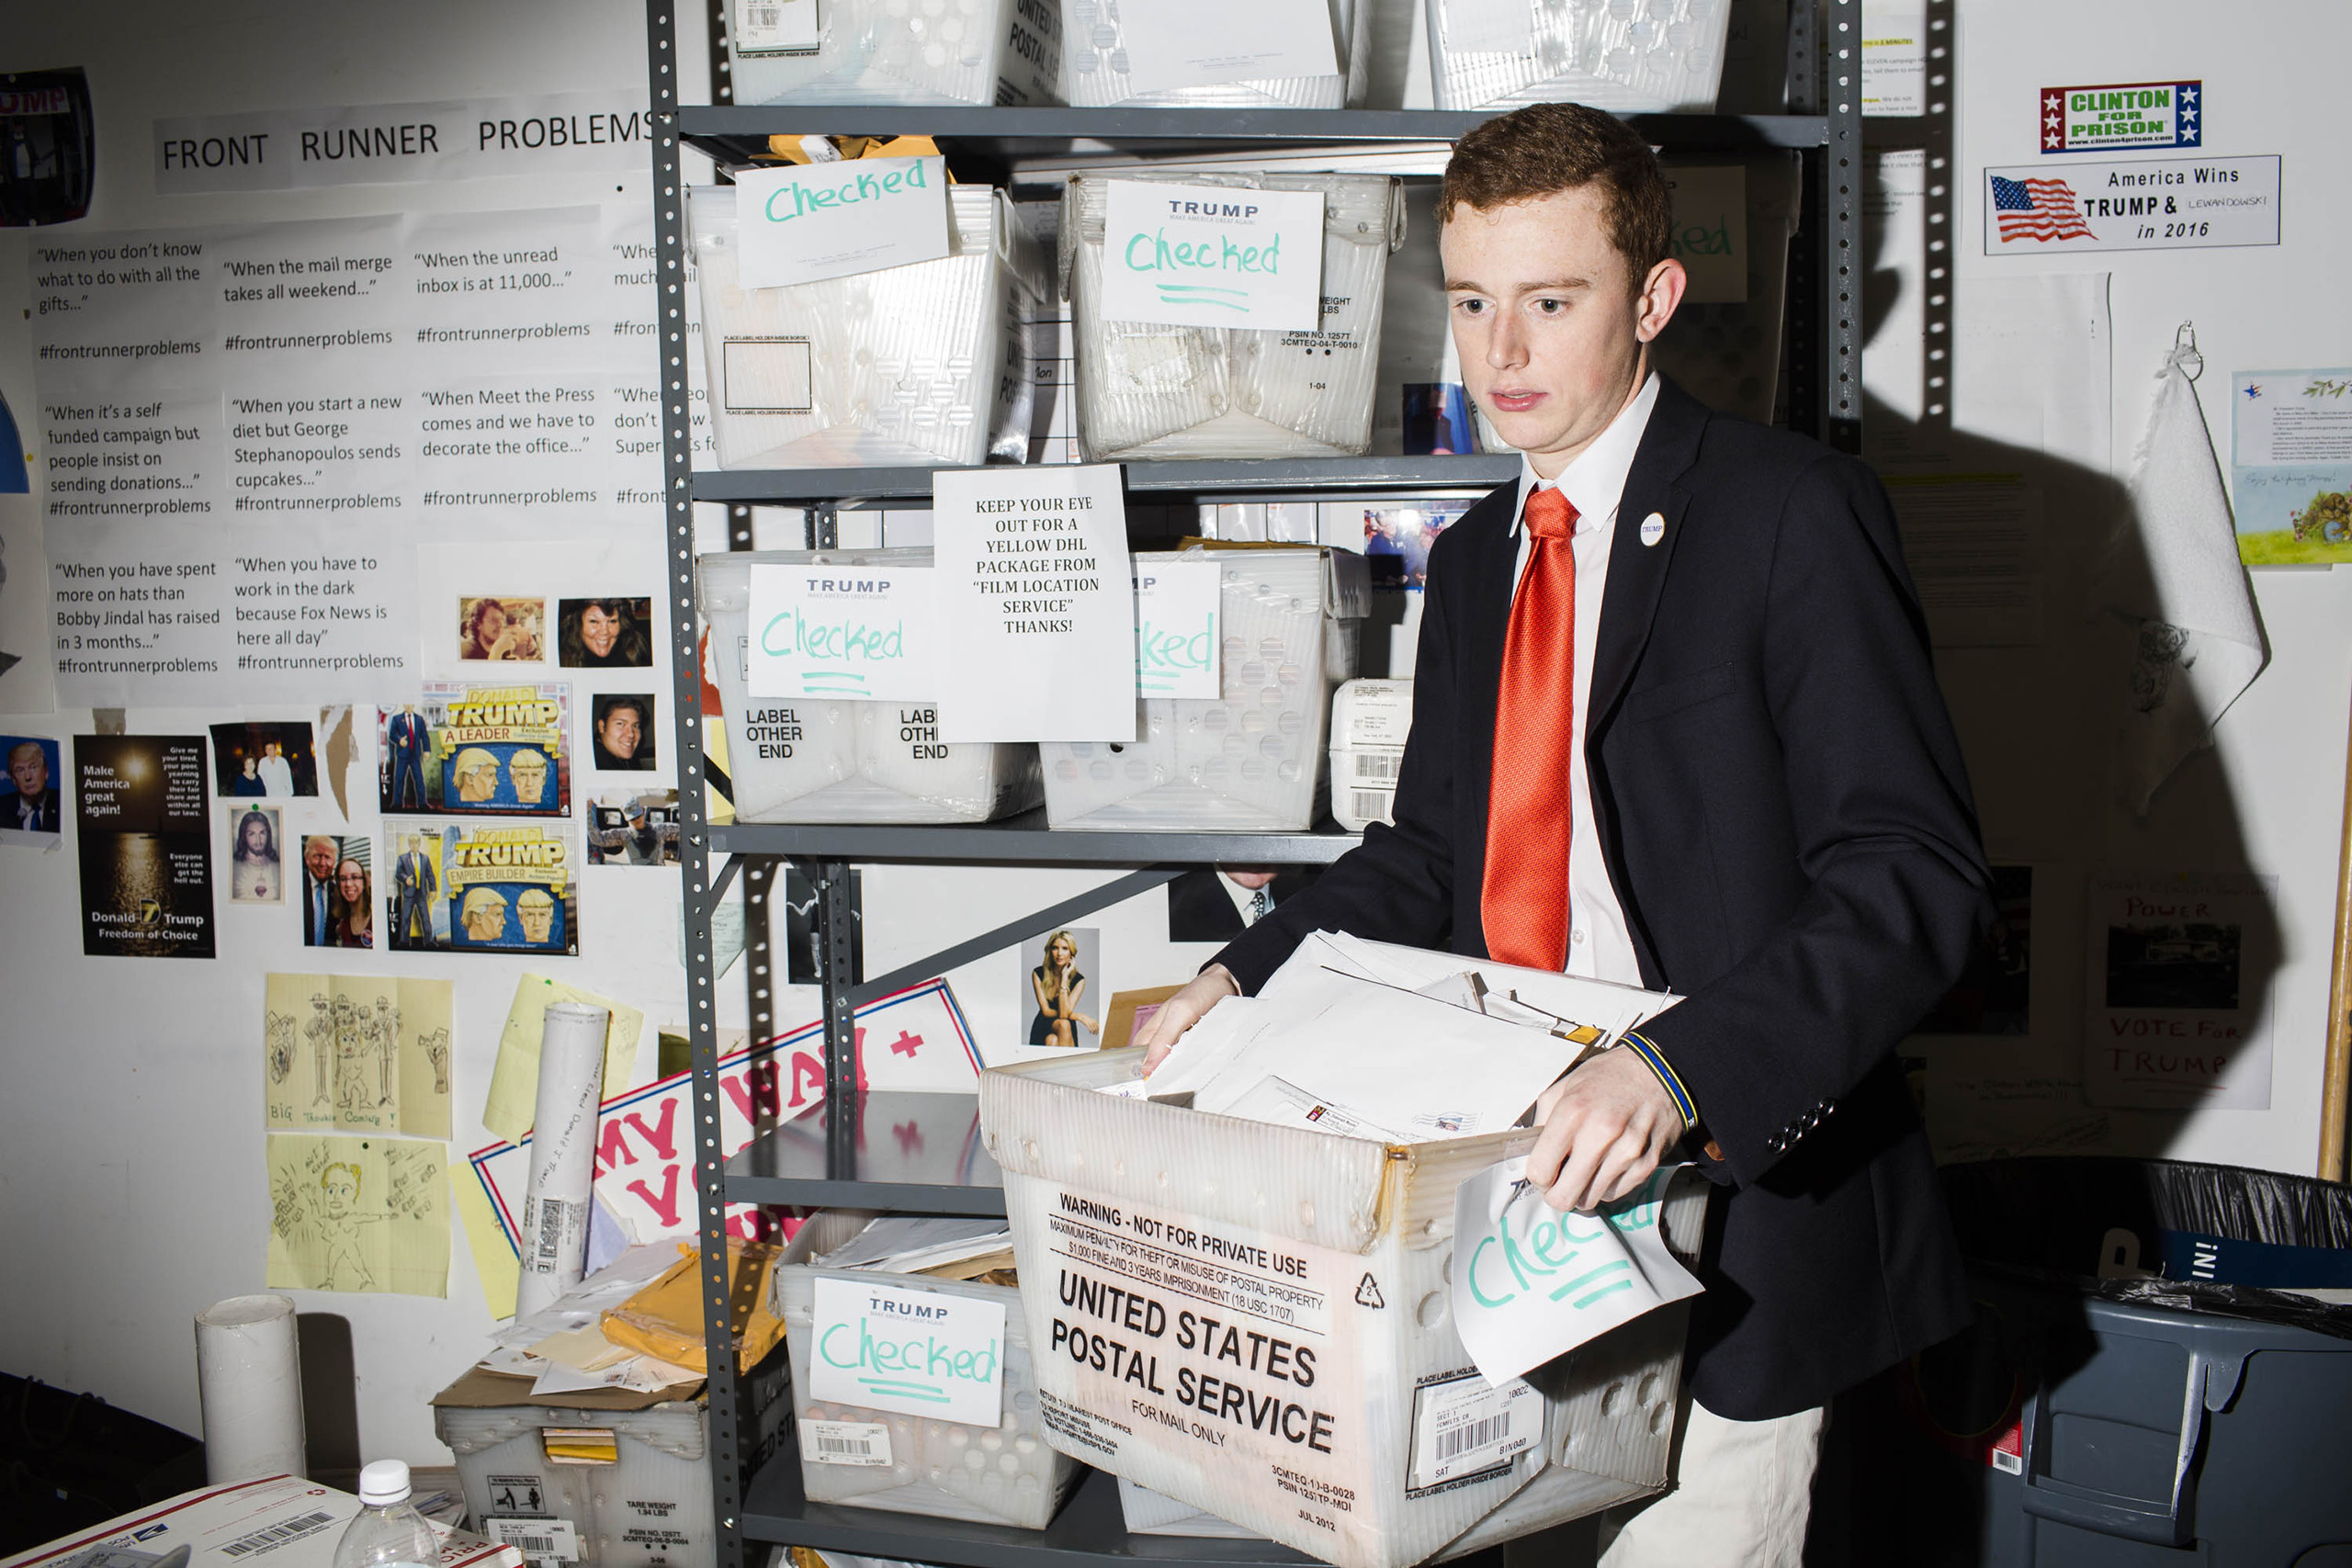 Checking mail at the campaign headquarters of Donald Trump on May 24, 2016, in Trump Tower, New York City.